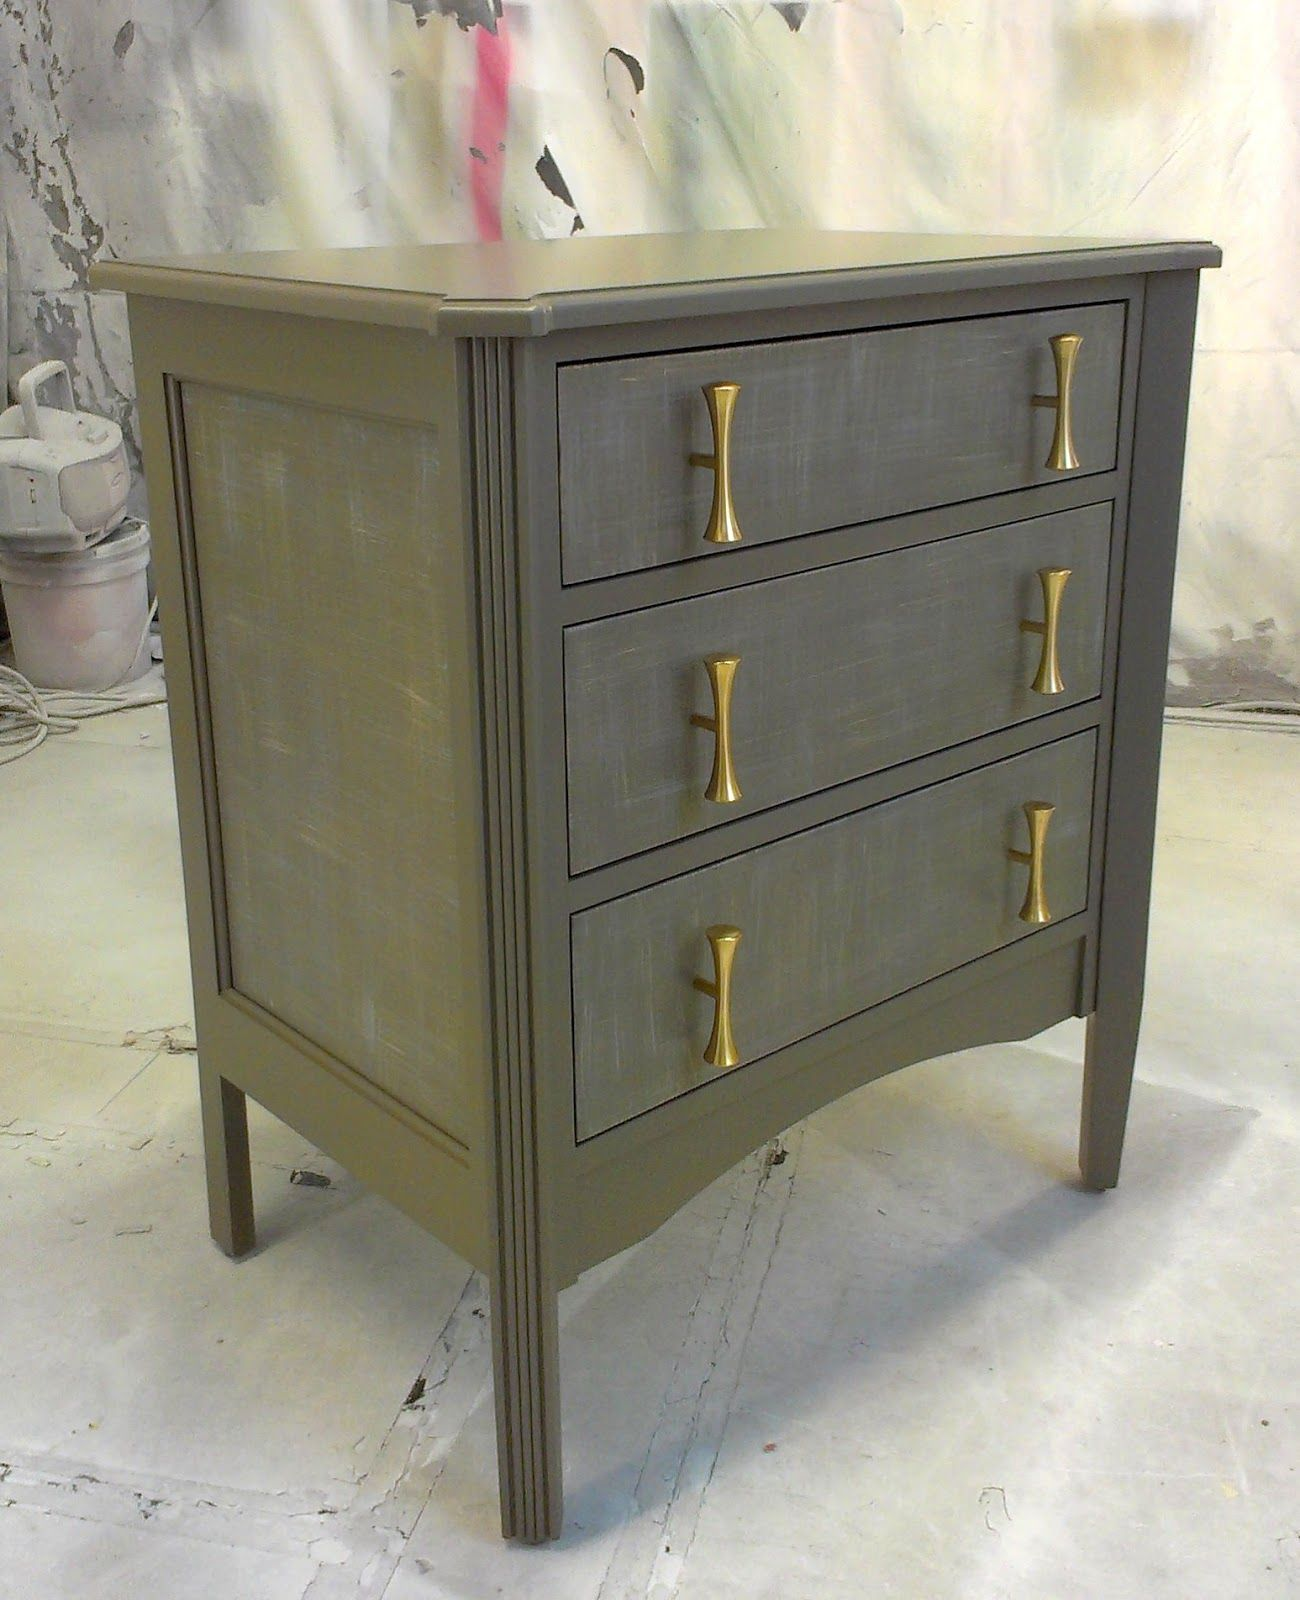 Sydney barton painted furniture note the drawer pulls are